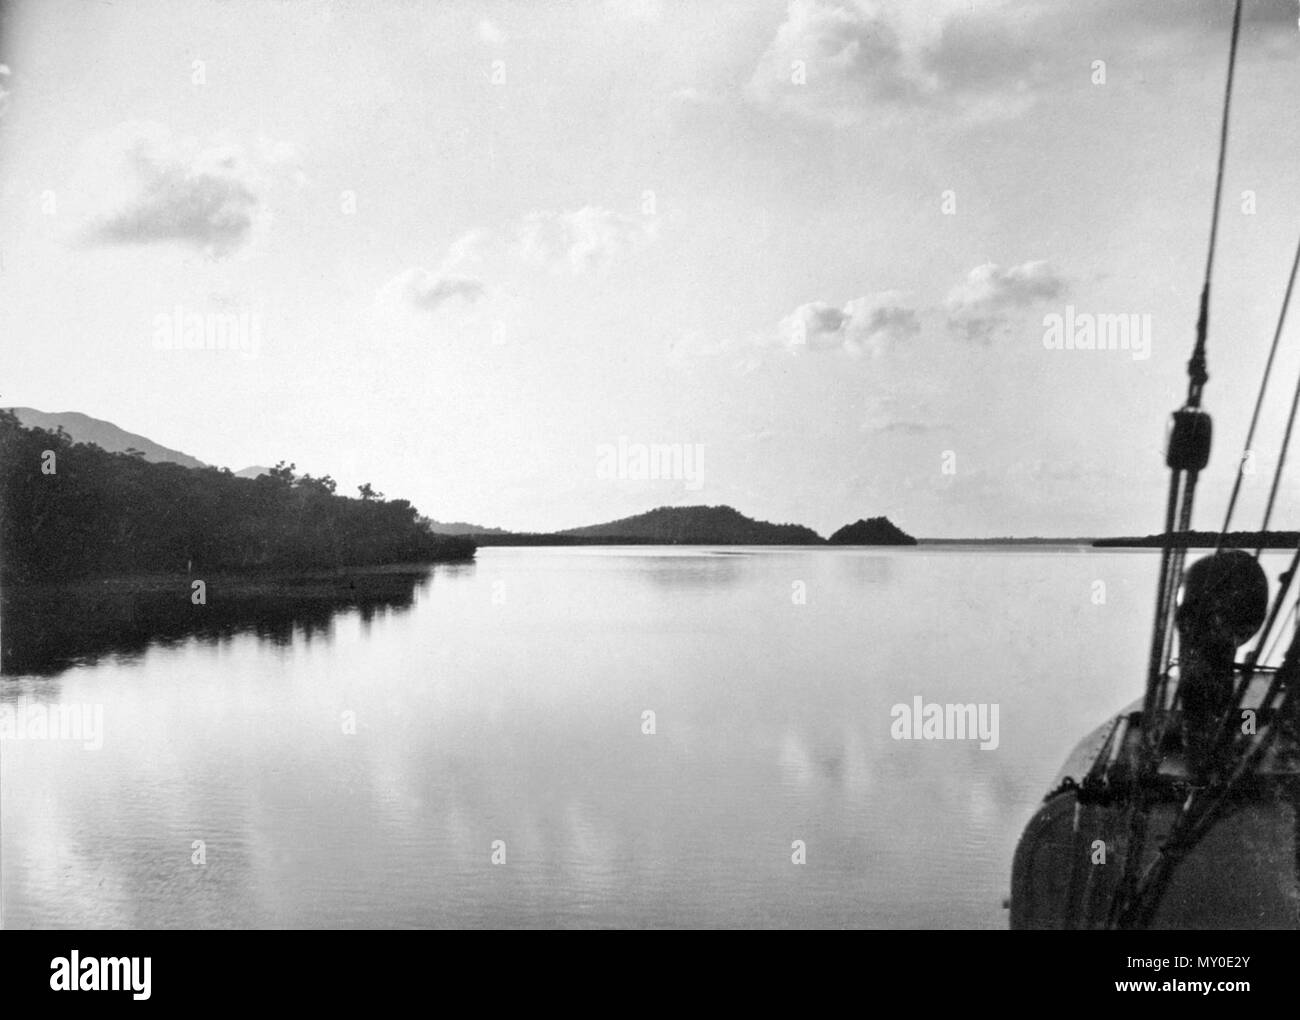 Scene in Hinchinbrook Channel, North Queensland, c 1927. The Week 3 June 1927  TOURIST TRAFFIC. RECORD SEASON. PROMISED. 187592502 )   The tourist traffic In Queensland for this winter gives promise of breaking all records. Officers of the Intelligence and Tourist Bureau report that the traffic to date has exceeded expectations, and visitors are coming from West Australia, South Australia, Tasmania, and New Zealand In large numbers.  The winter attractions of Queensland, particularly the north, orb being more and more recognised. The glories of the Cairns hinterland, of the Barron Falls and th - Stock Image